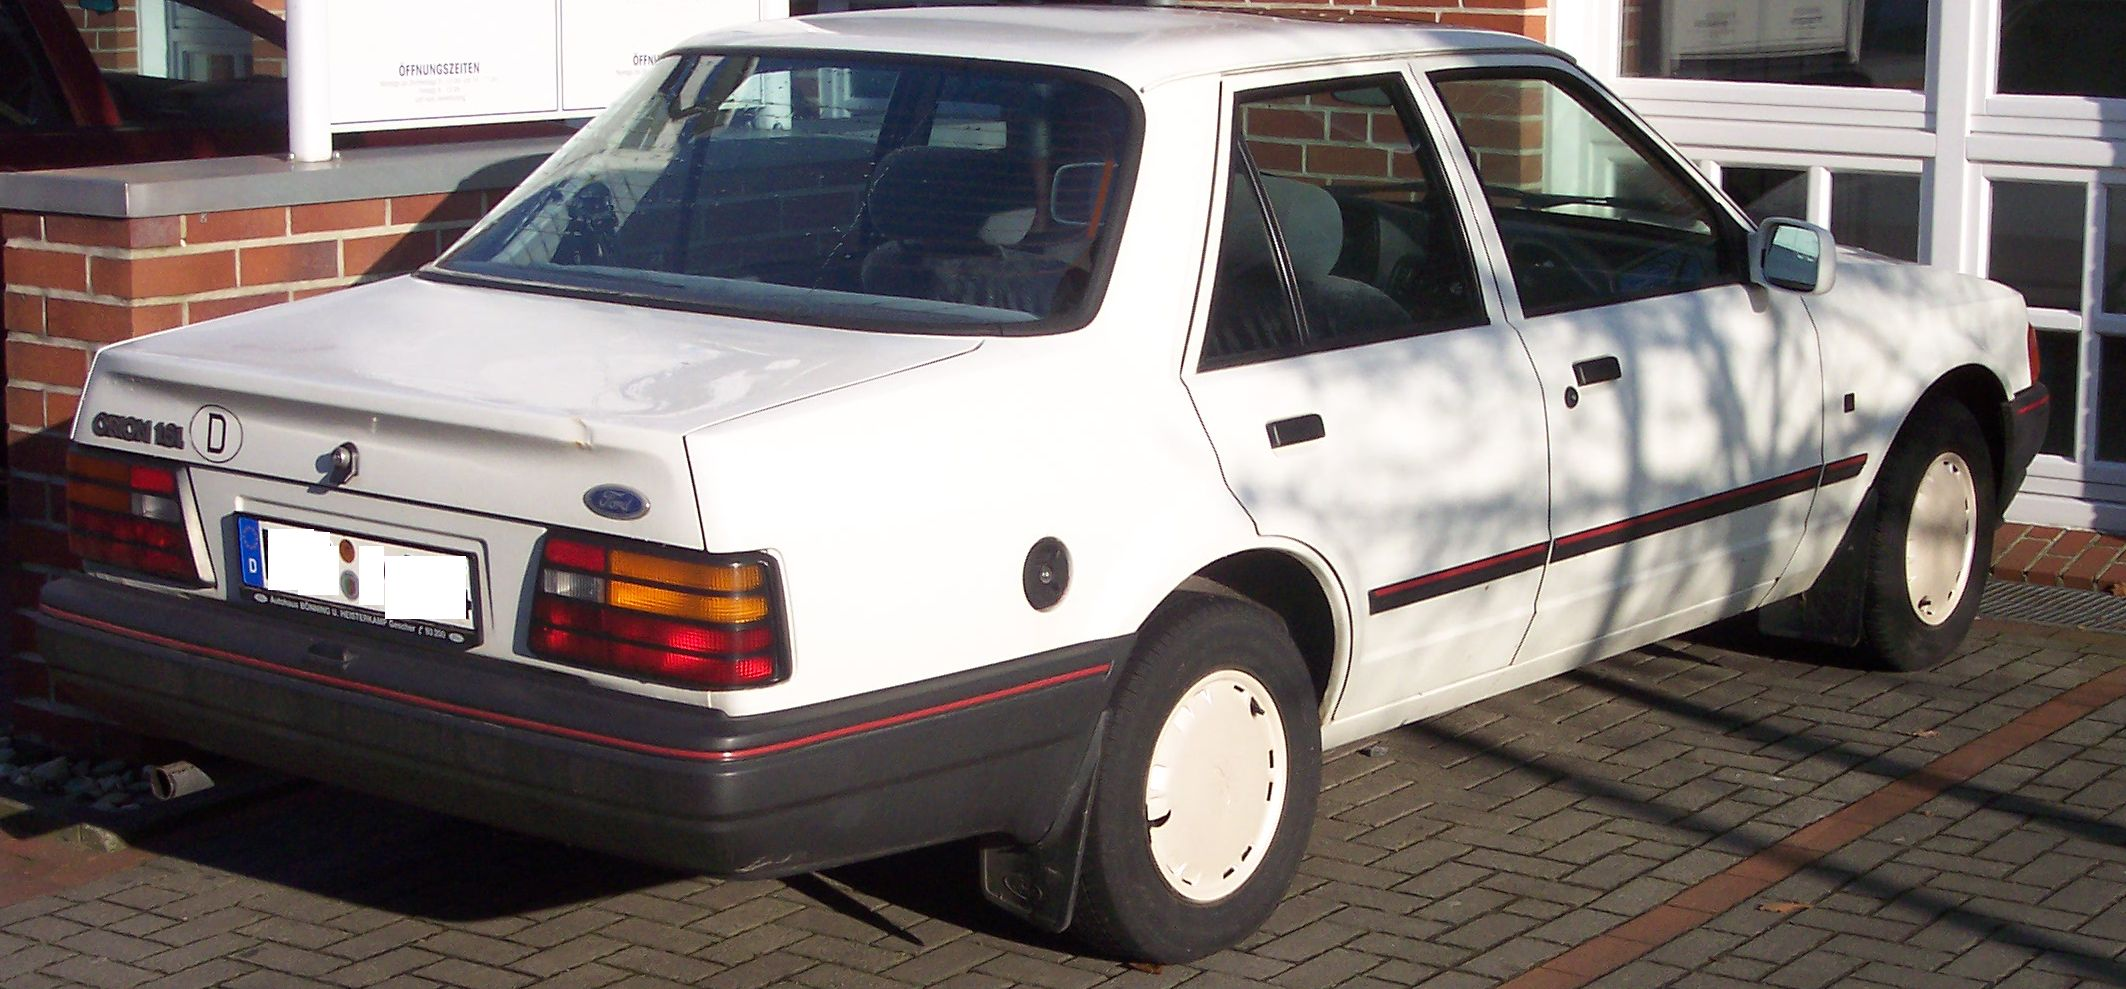 ford orion pics #6